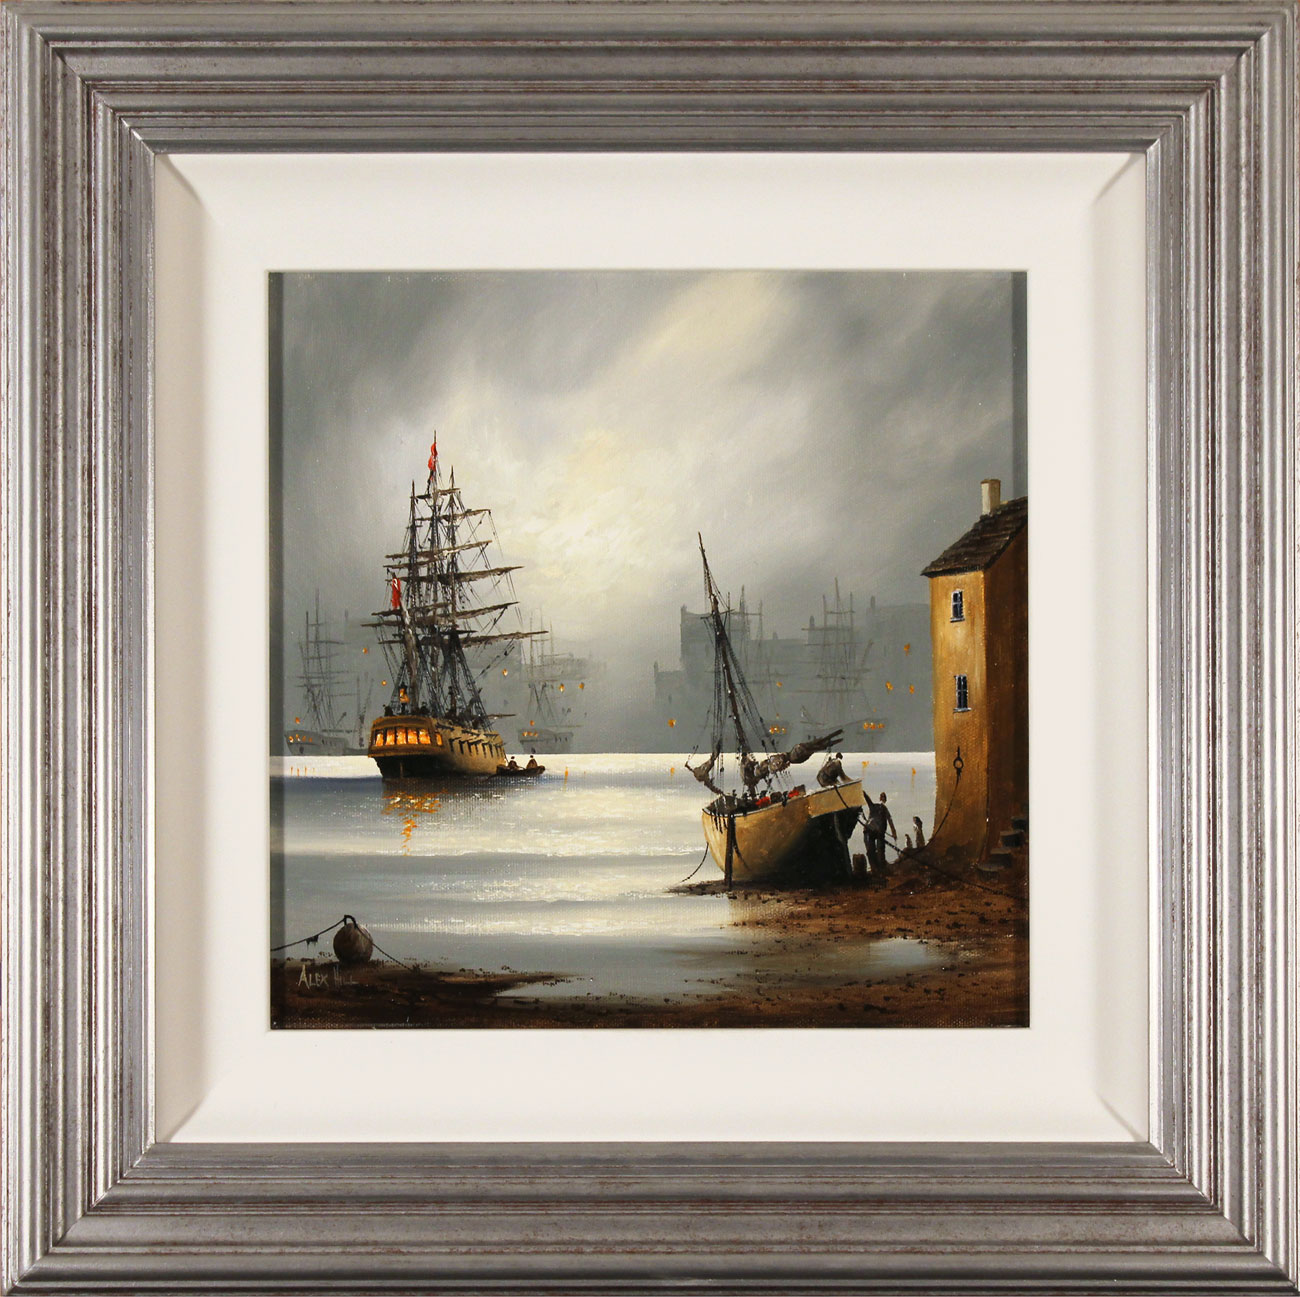 Alex Hill, Original oil painting on canvas, Moonlight Harbour Click to enlarge